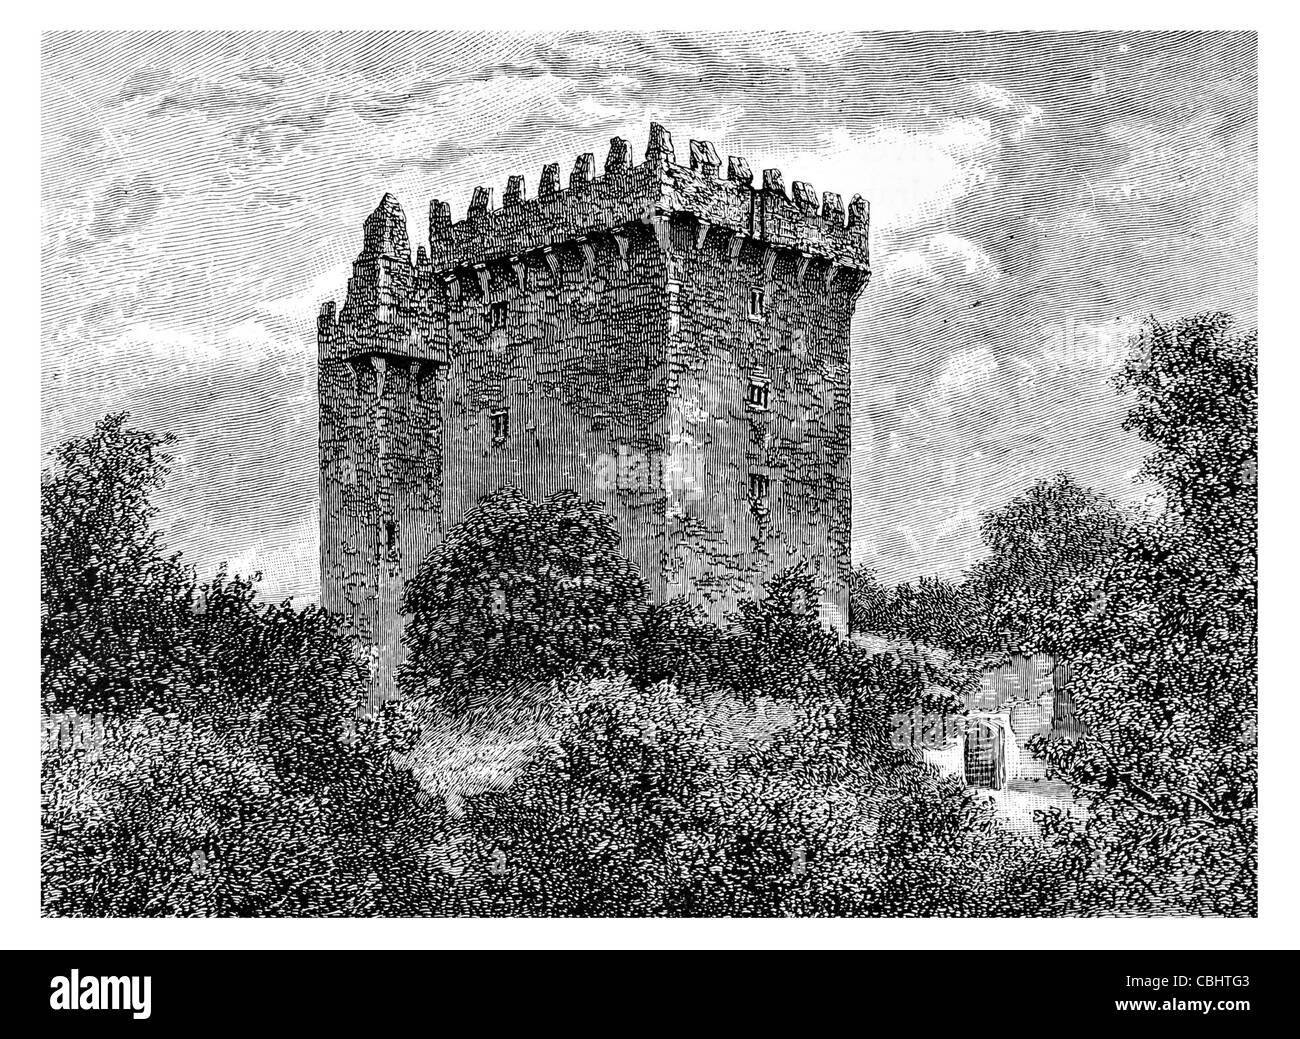 Blarney Castle medieval stronghold Blarney Cork Ireland MacCarthy Muskerry Castle fort fortification bastion chateau - Stock Image